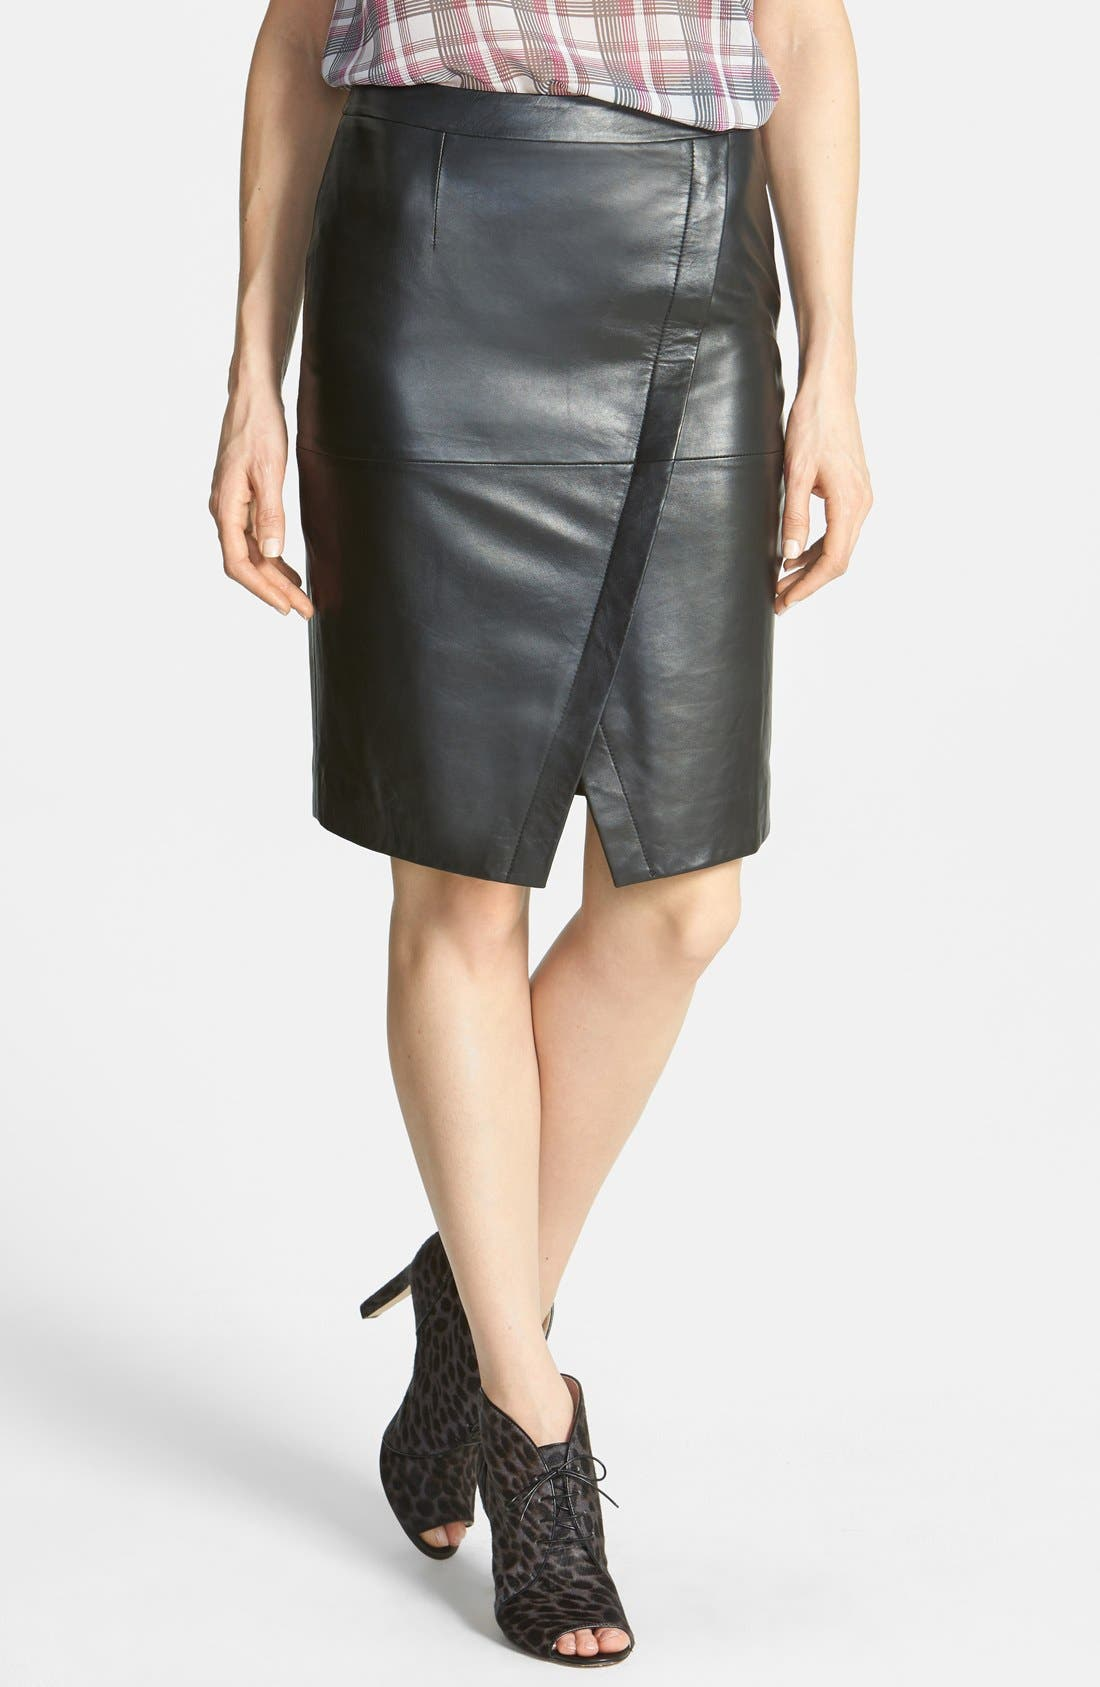 Alternate Image 1 Selected - Halogen® Seamed Leather Pencil Skirt (Regular & Petite)